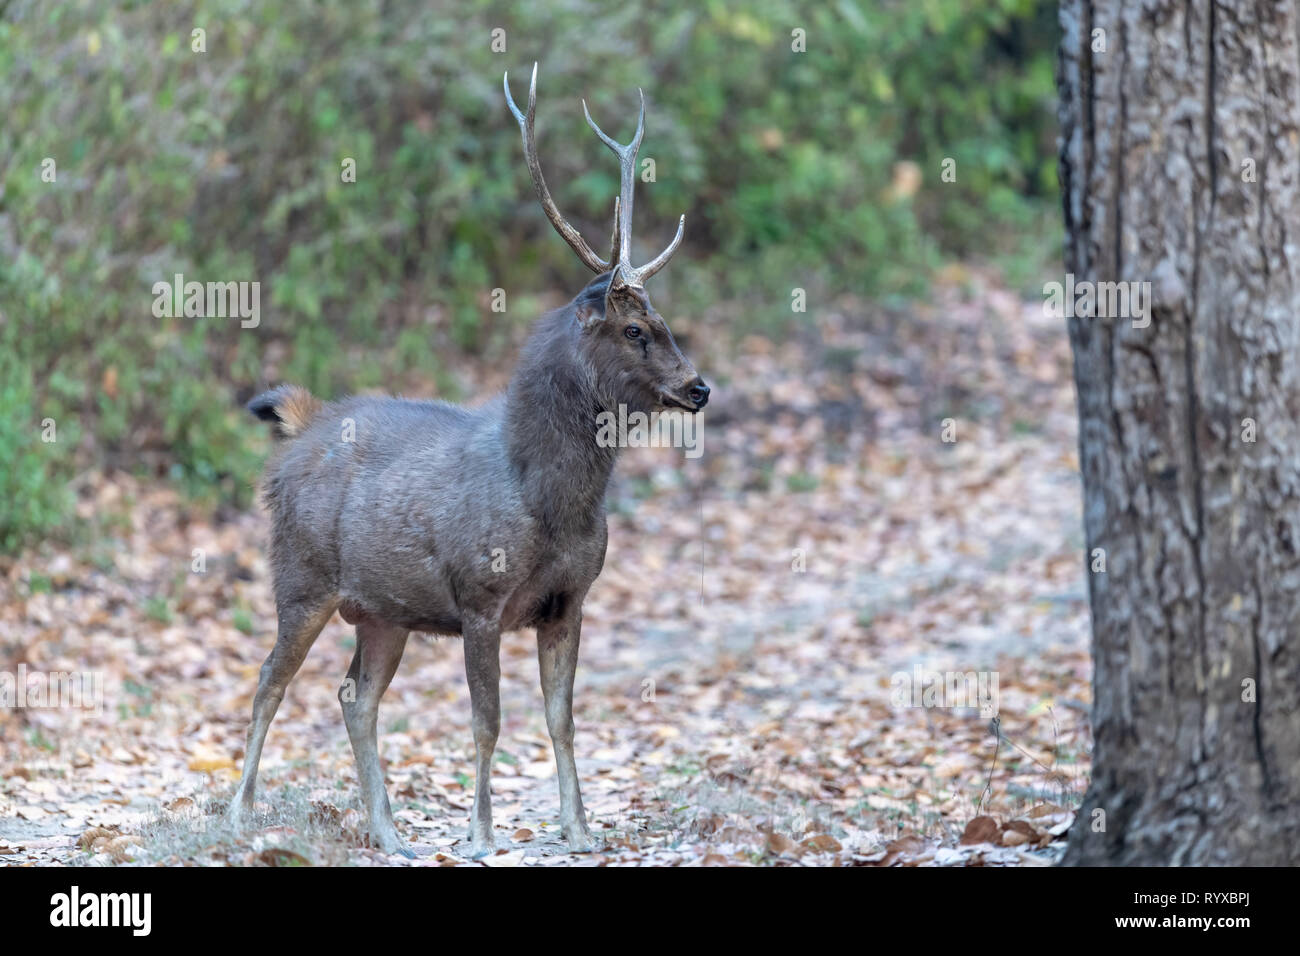 Vulnerable-listed Indian sambar deer (Rusa unicolor unicolor) in India - Stock Image